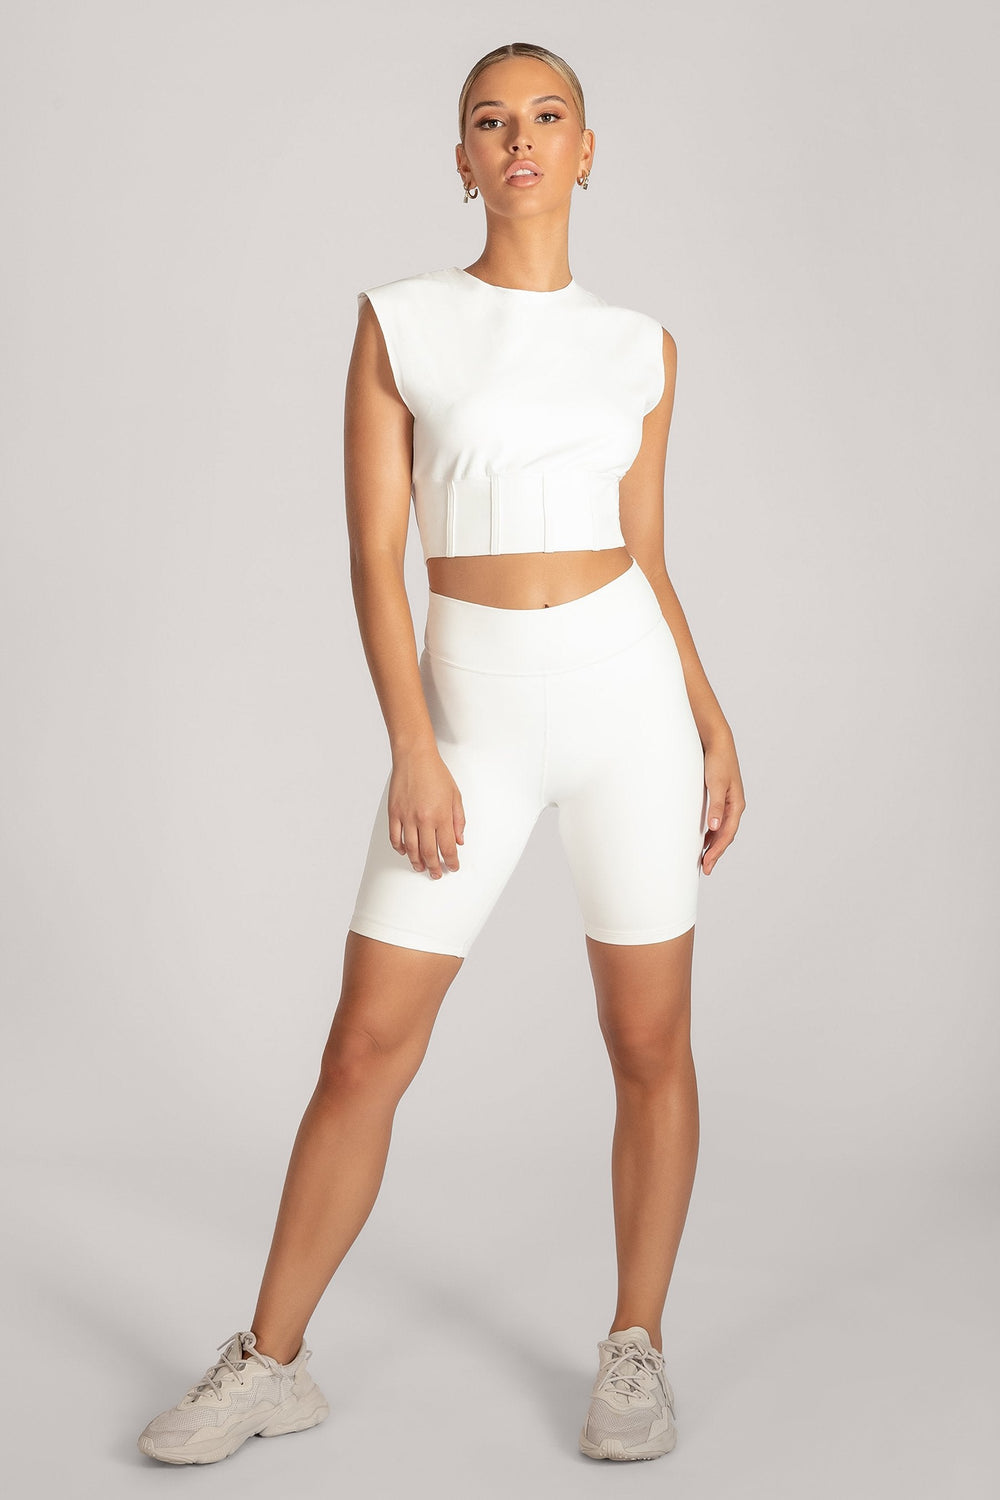 Hestia Panelled Sleeveless Crop Top - White - MESHKI ?id=16083116851275